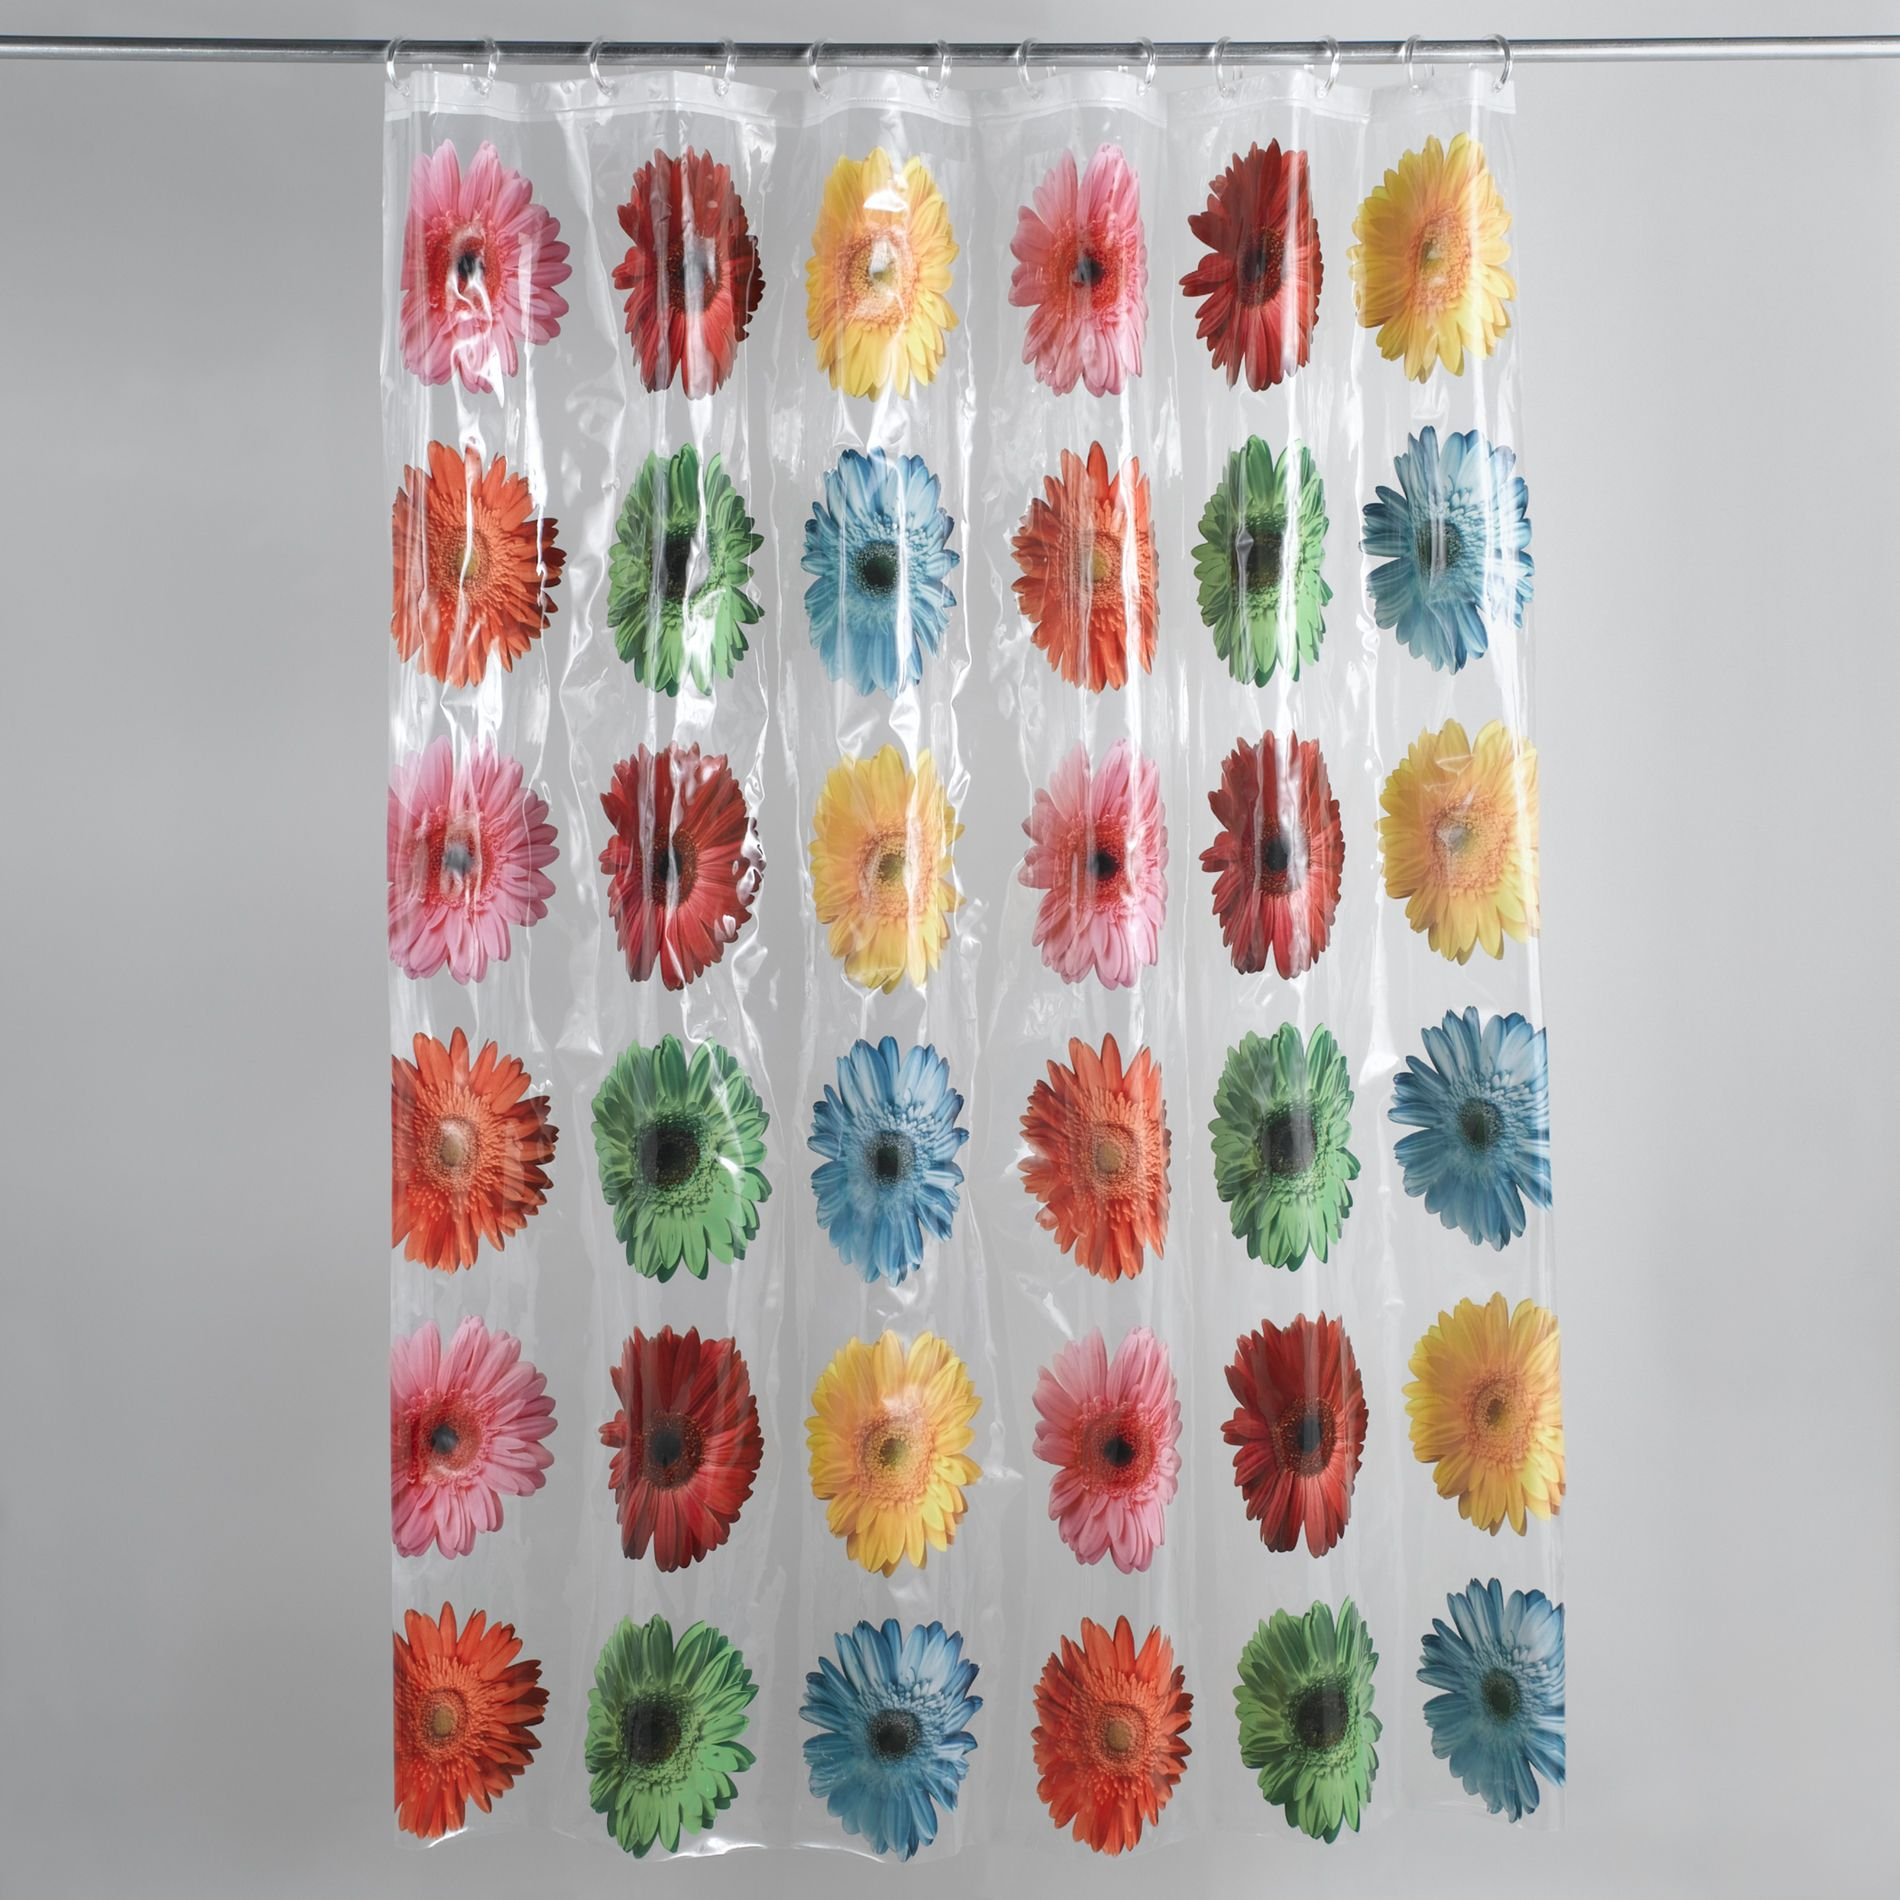 Colormate Gerber Daisy Shower Curtain